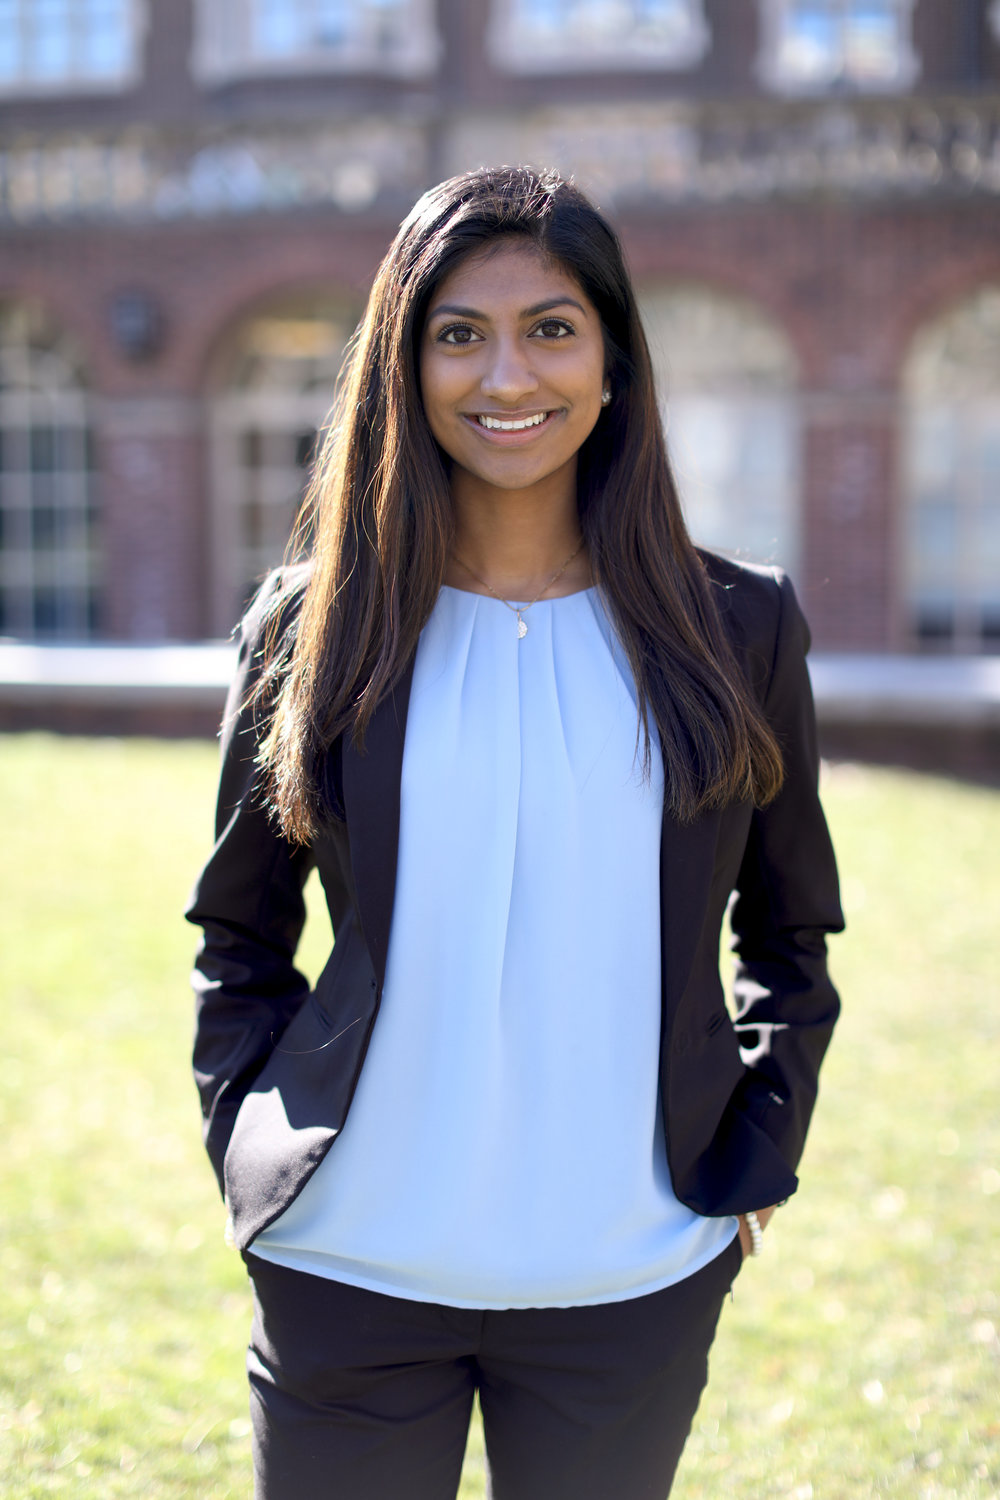 Sahitya Mandalapu - Vice President of Membership DevelopmentSahitya Mandalapu (Class of 2021) is from Bethlehem, Pennsylvania and is pursuing concentrations in Finance and Healthcare Management. After working on the Financial Literacy Tutoring Program last fall, Sahitya is excited to implement membership development ideas such as a summer initiative, study hours, Welcome Week, and more. She is beyond excited to get to know as many amazing members as she can this year. Besides her involvement in Wharton Women, Sahitya is a member of the Undergraduate Assembly and Alpha Phi, and enjoys playing piano, cooking, and going to the gym. Feel free to reach out at sahitya@wharton.upenn.edu.